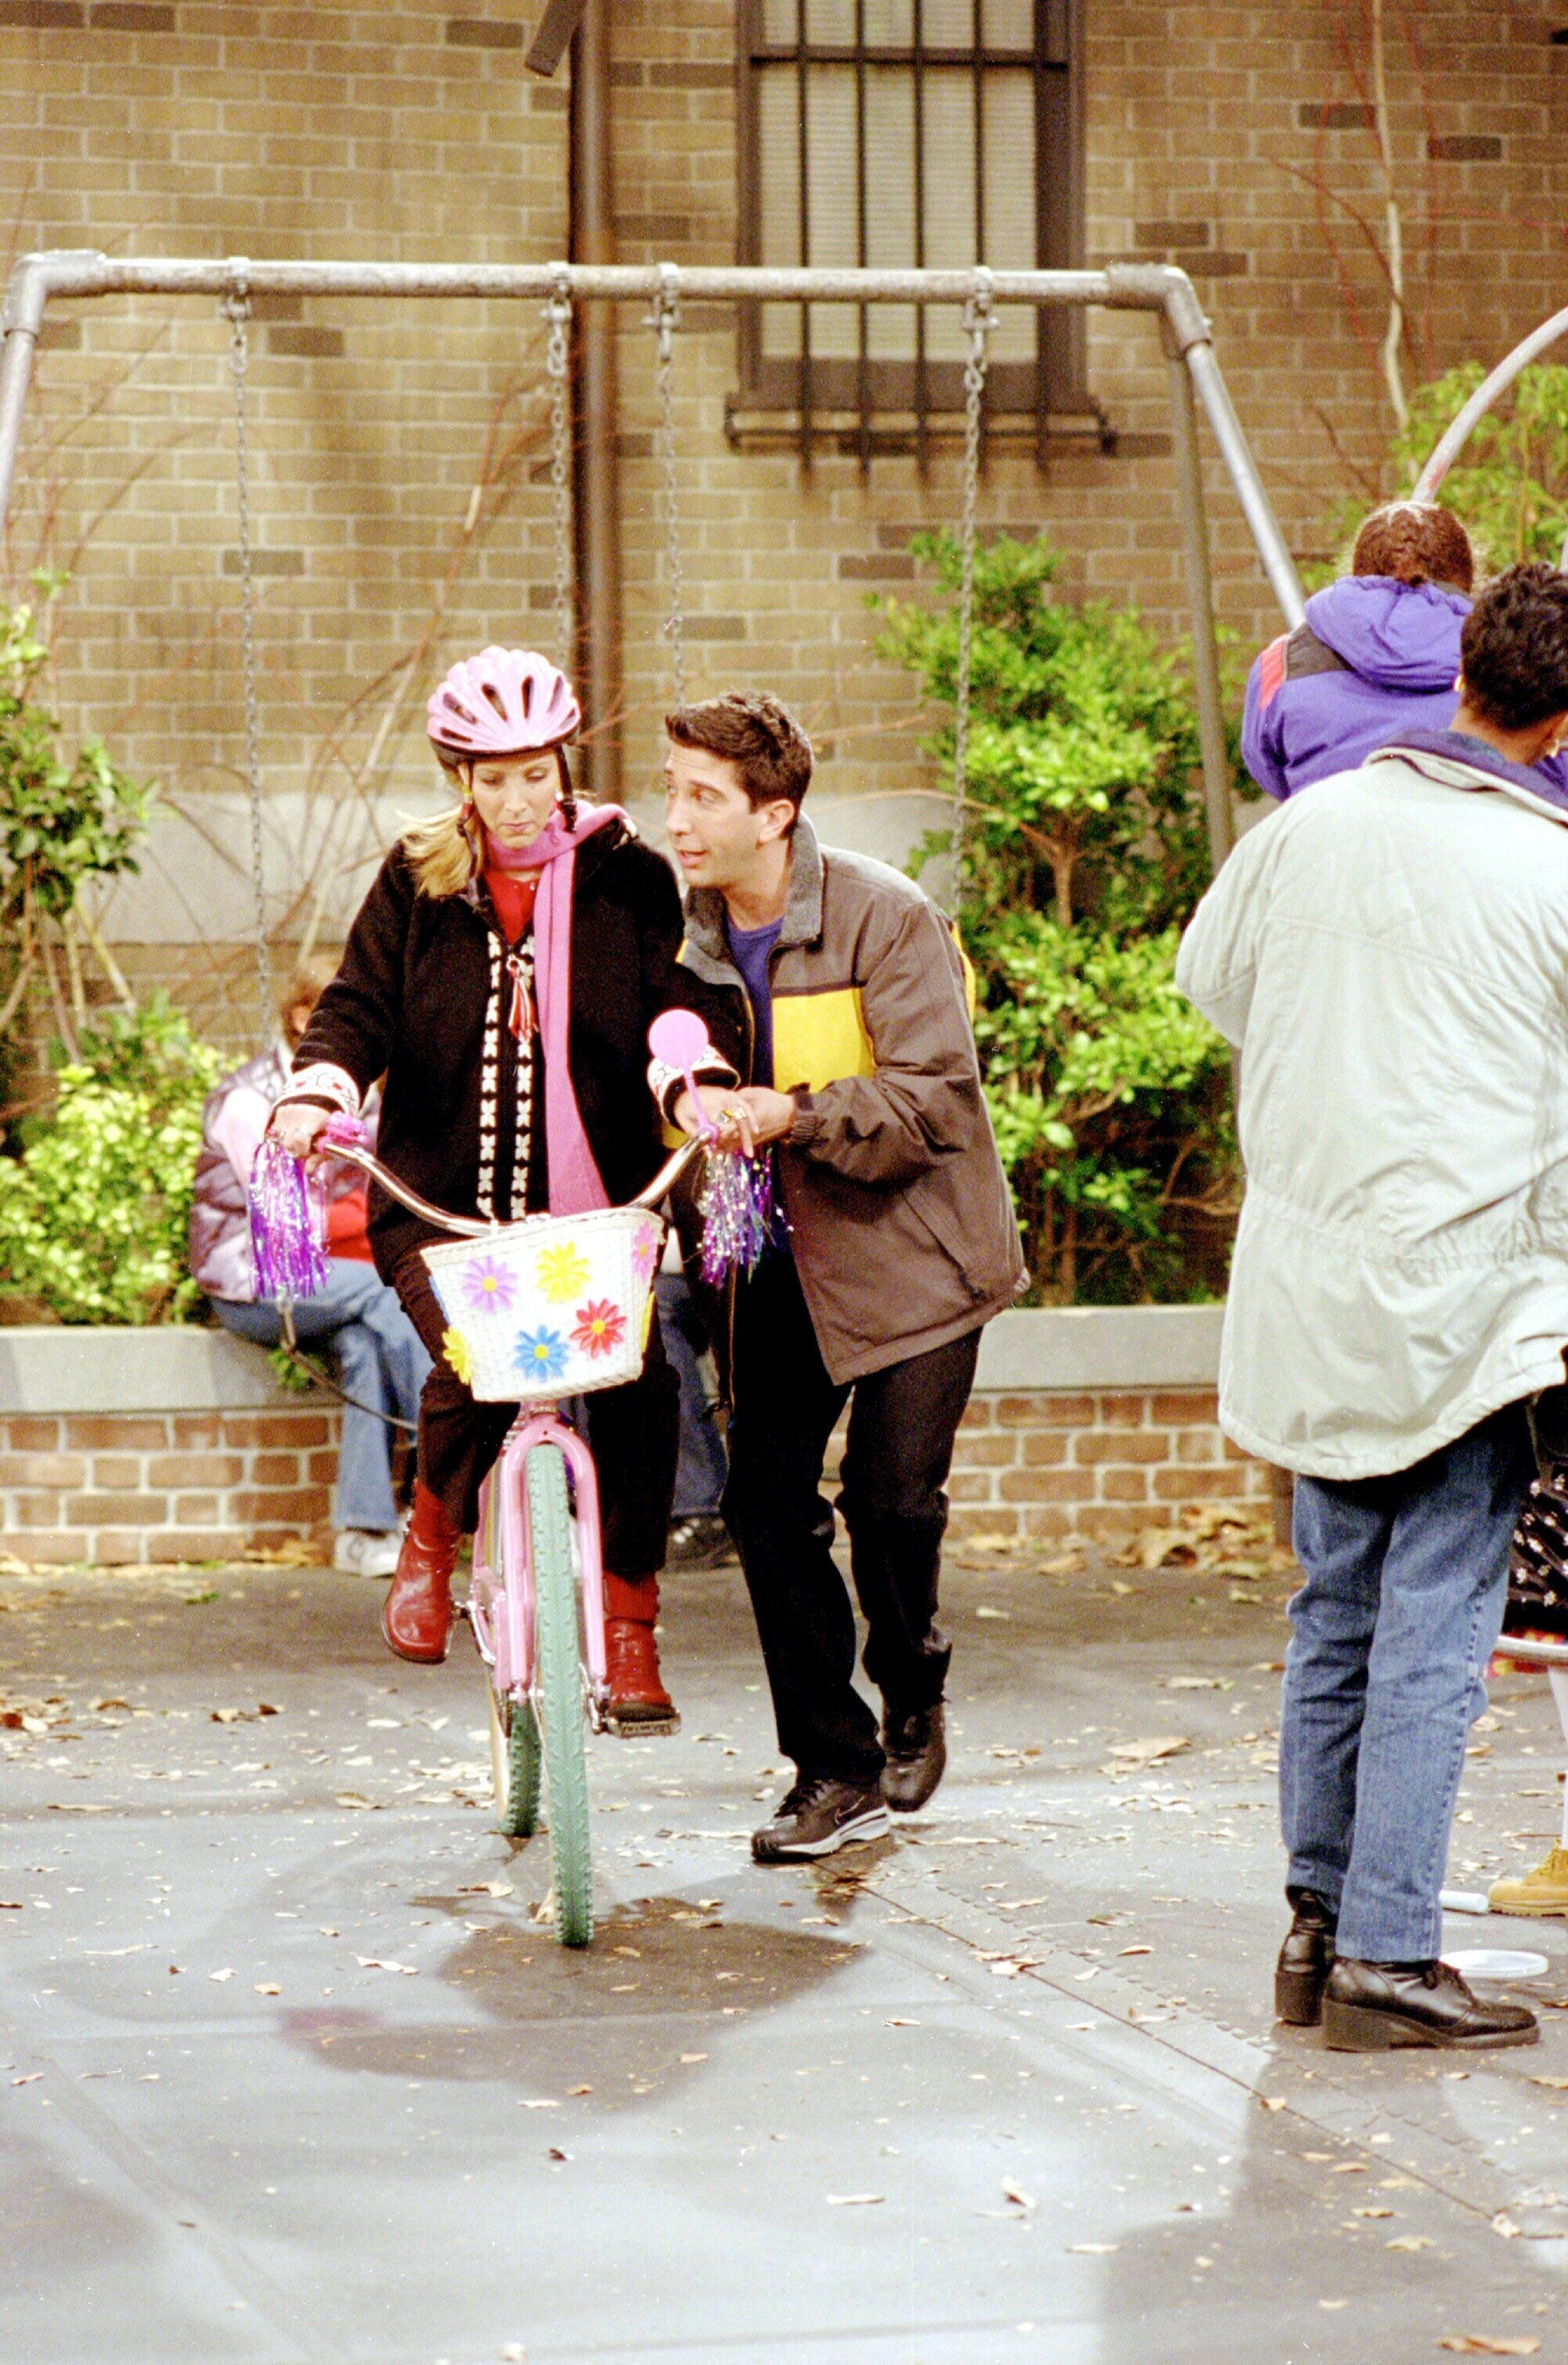 Ross helping Phoebe learn to rid e abike